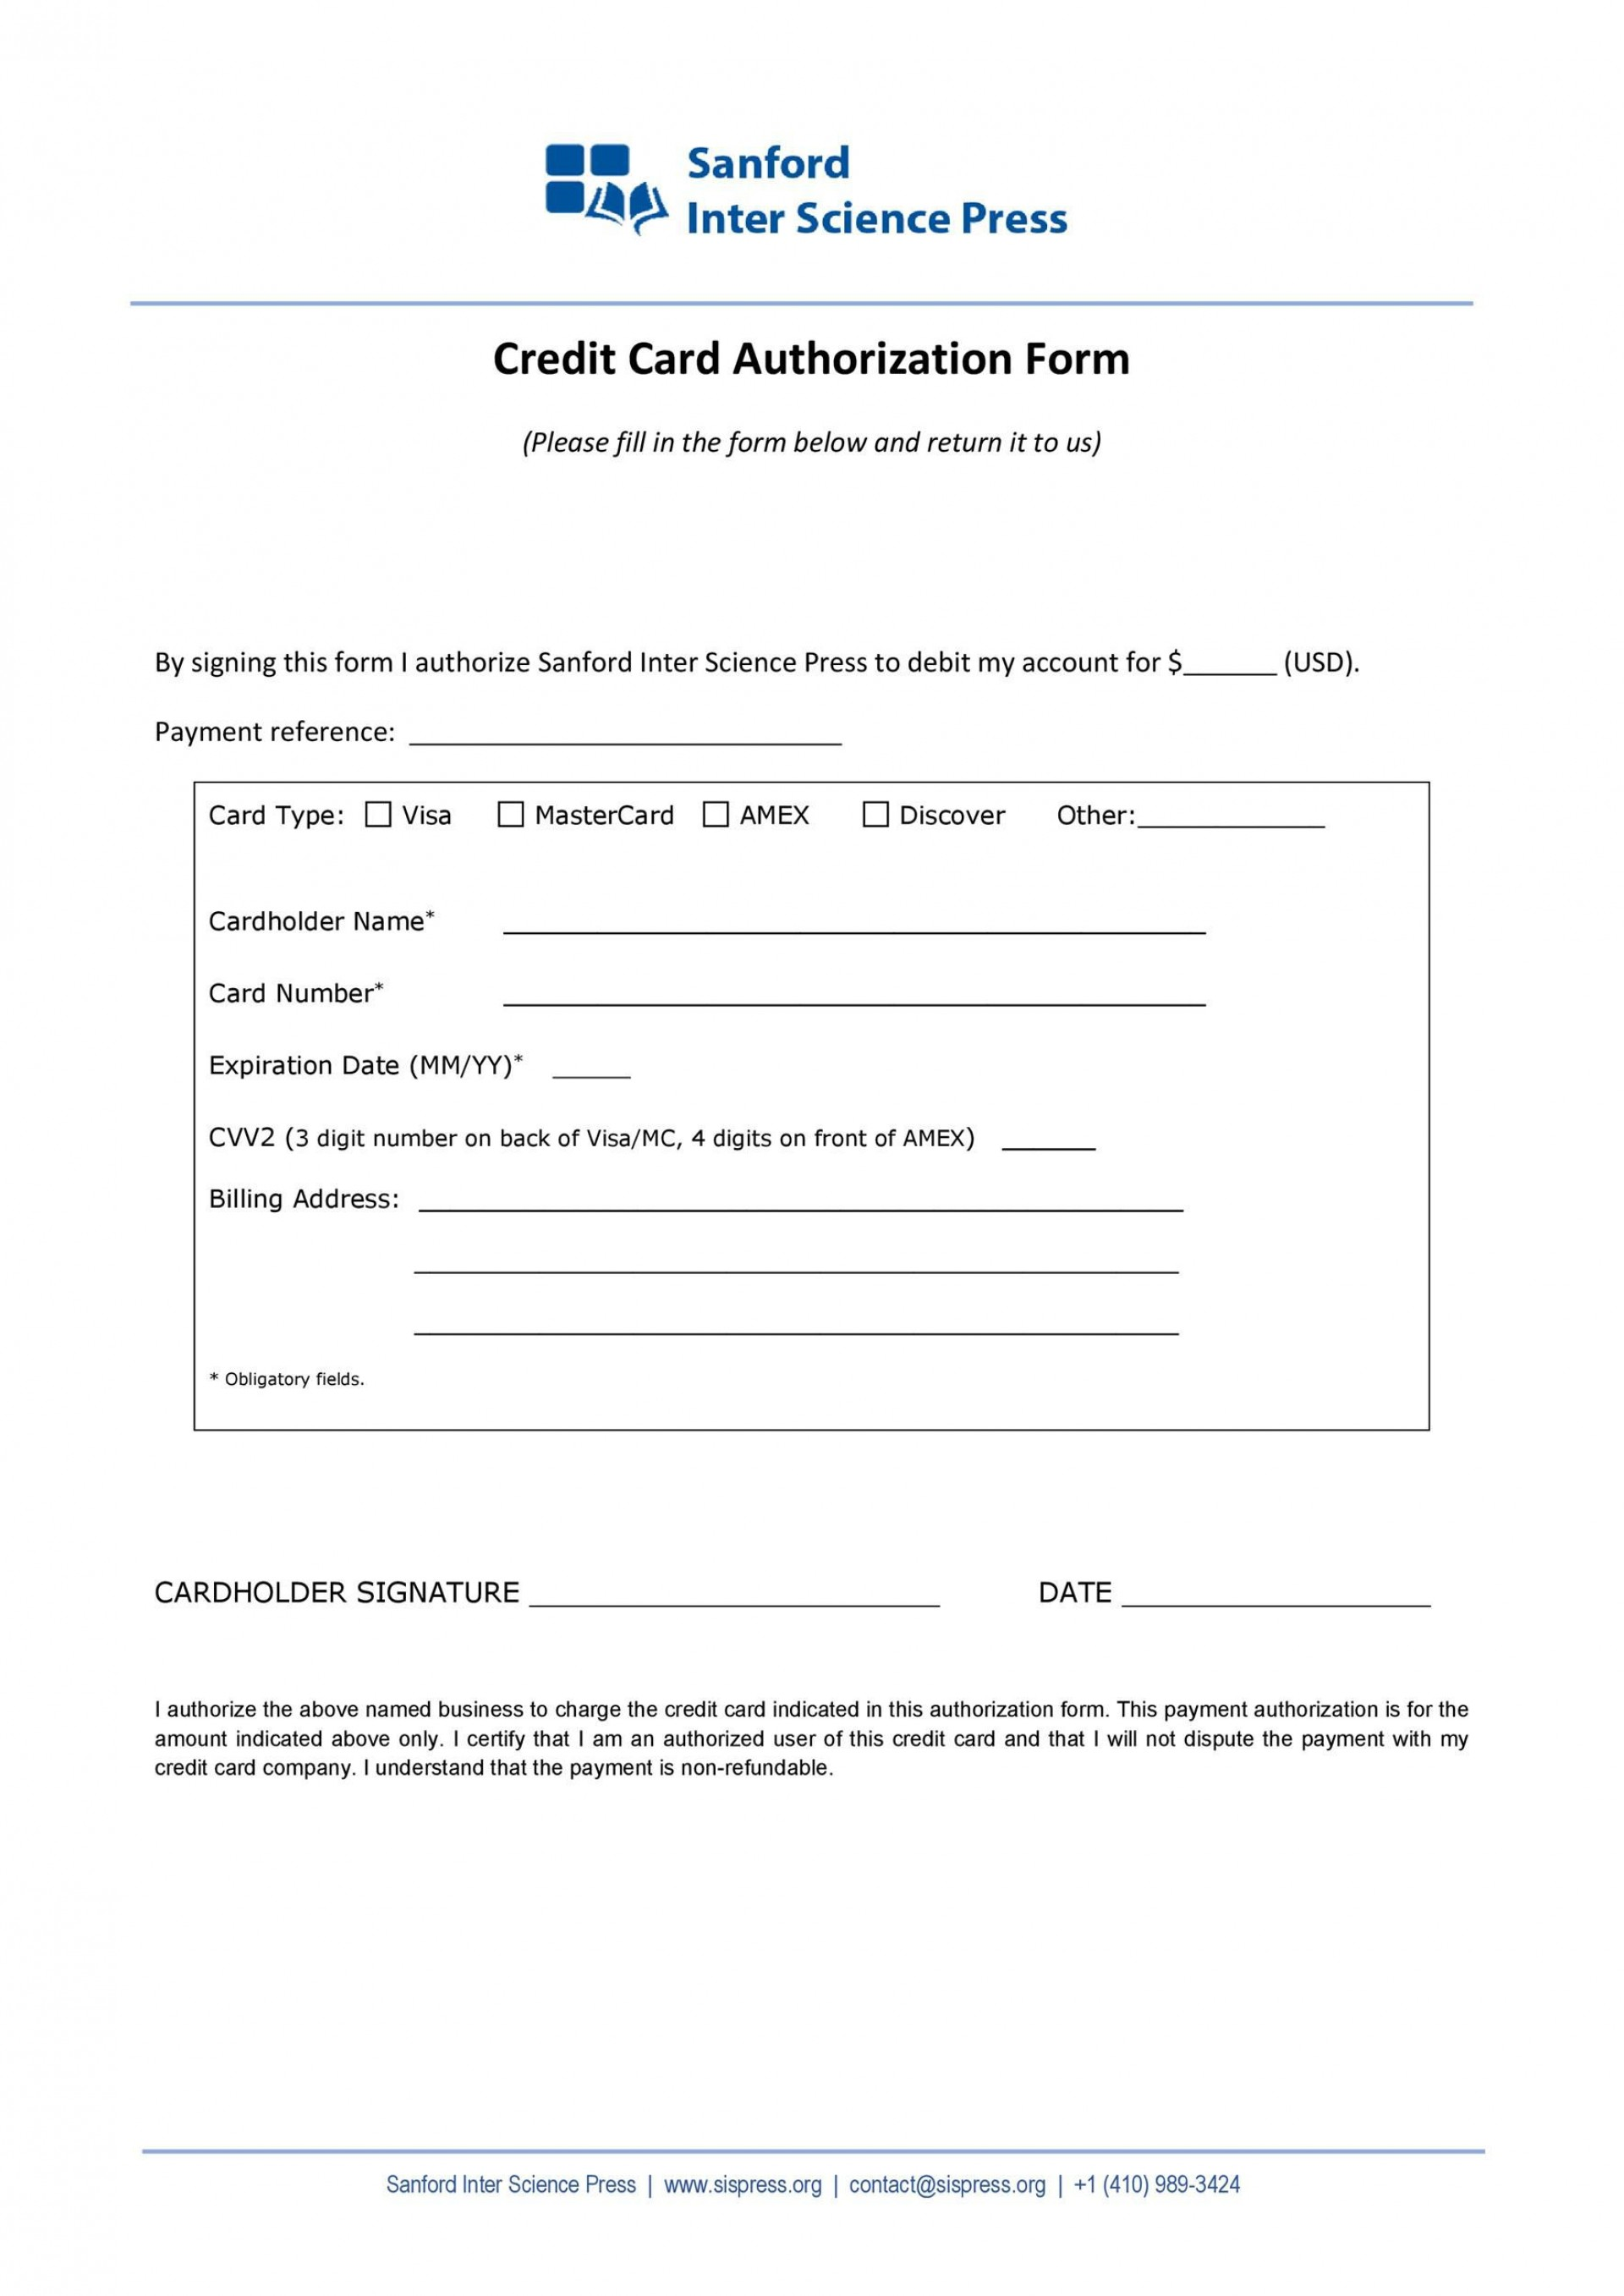 007 Formidable Credit Card Form Template Html Idea  Example Payment Cs1920